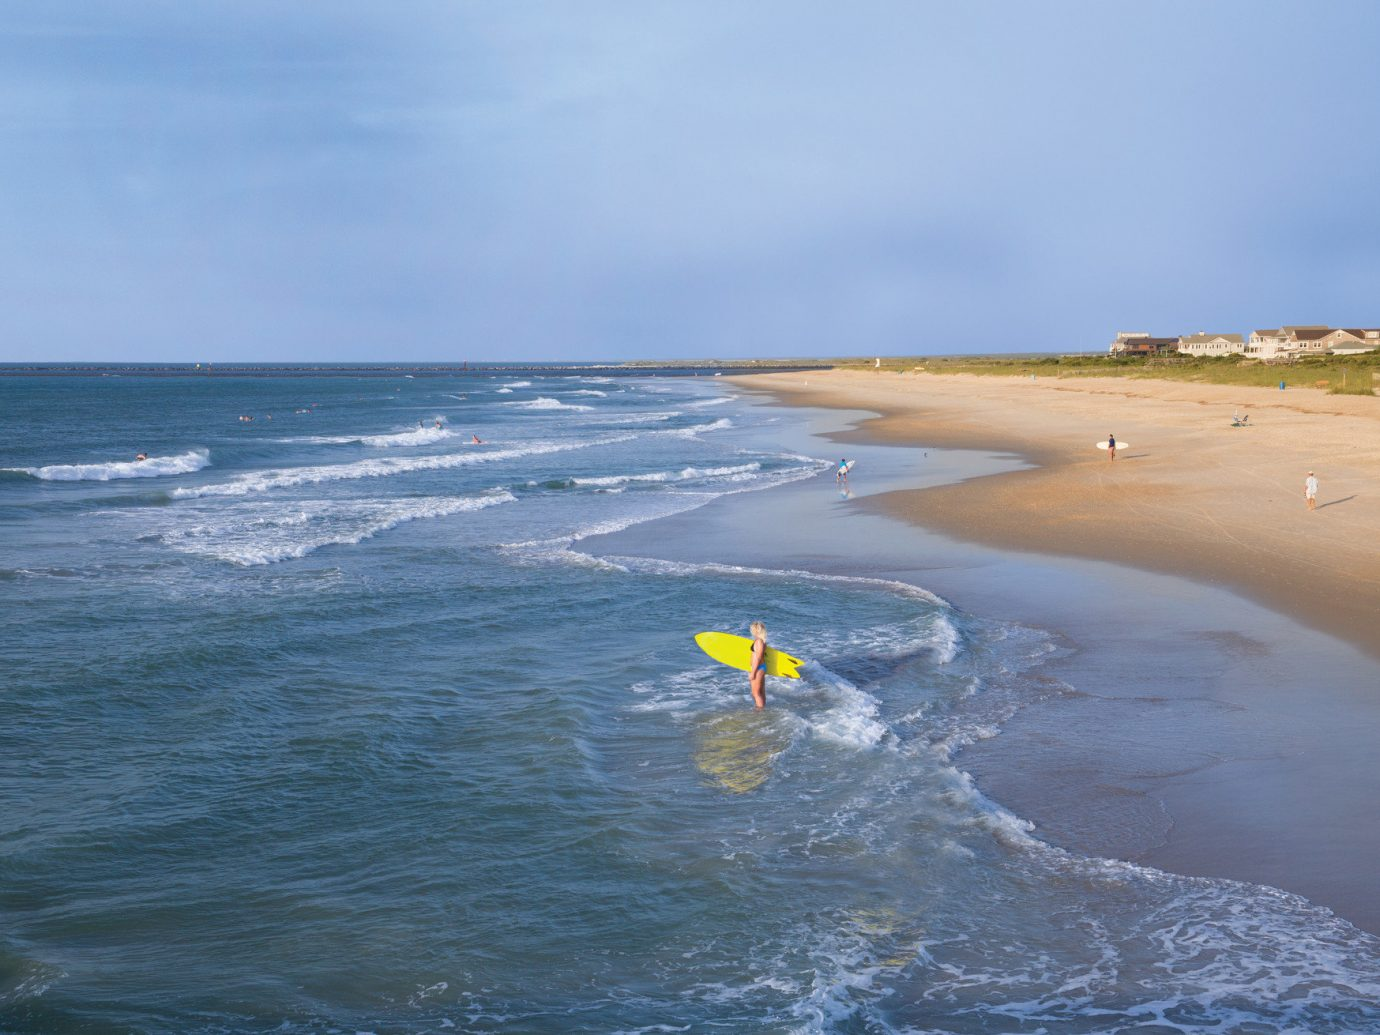 East Coast USA Trip Ideas water outdoor sky shore Sea wind wave body of water Ocean wave Coast Beach Nature sports water sport cape boardsport surfing equipment and supplies bay sand surfing